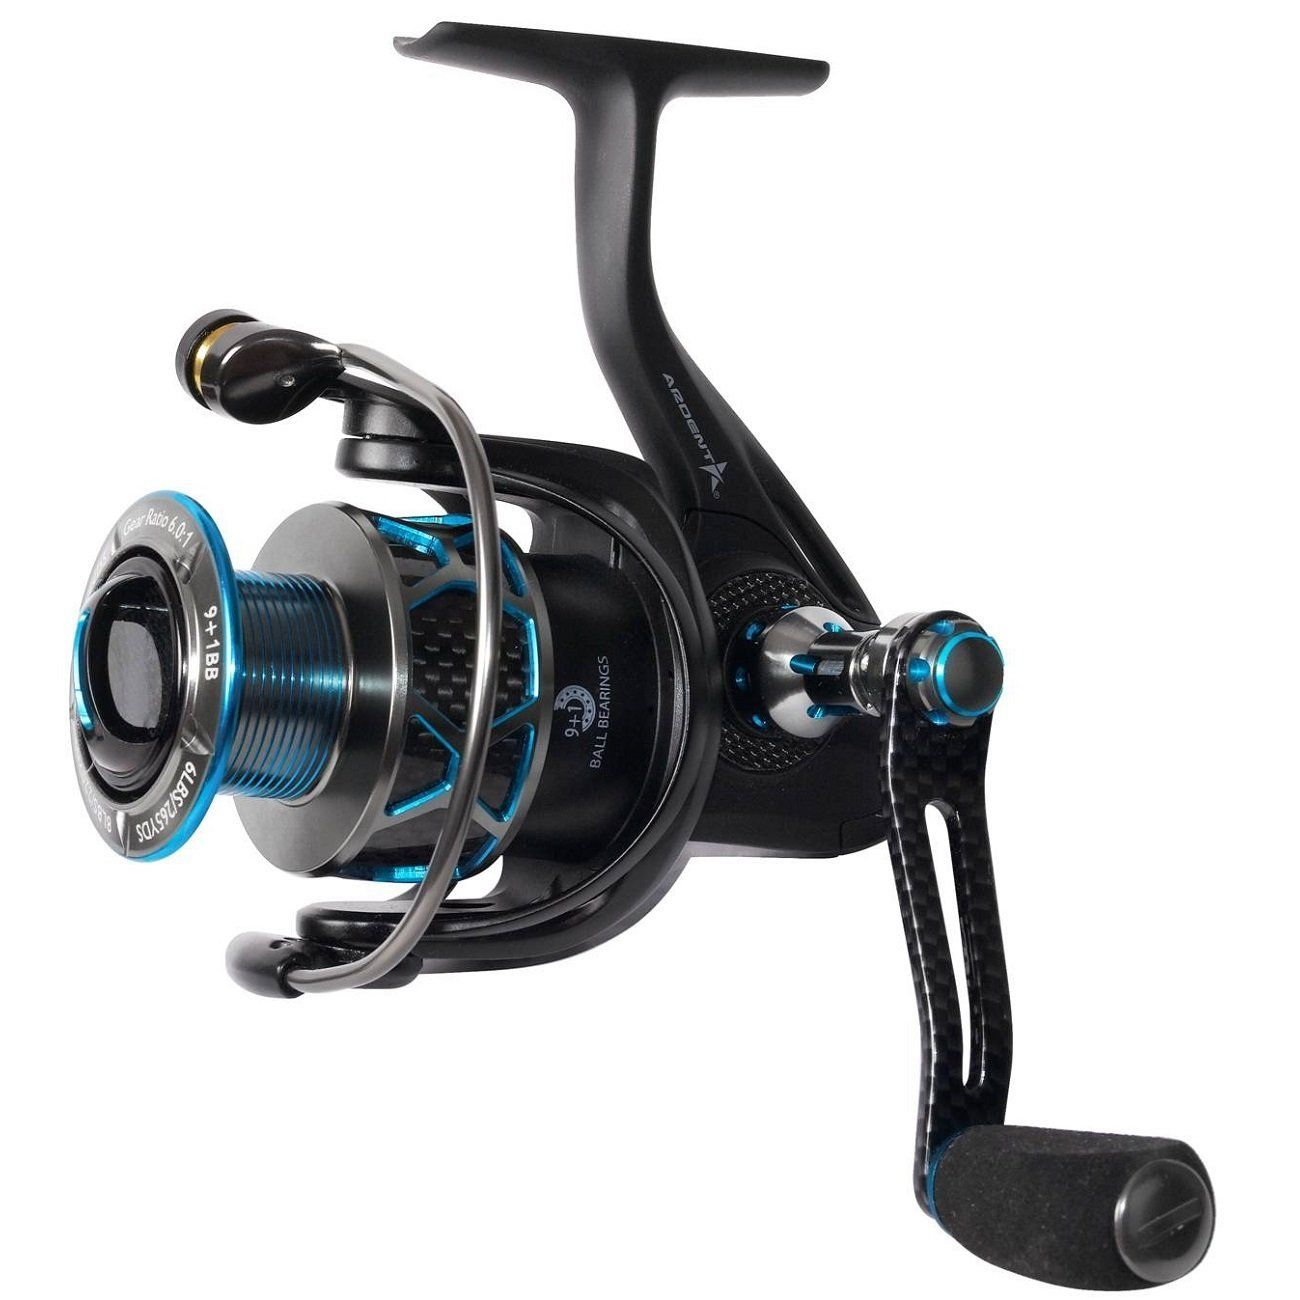 Ardent Bolt Spinning Reel 2000 ** You can find more